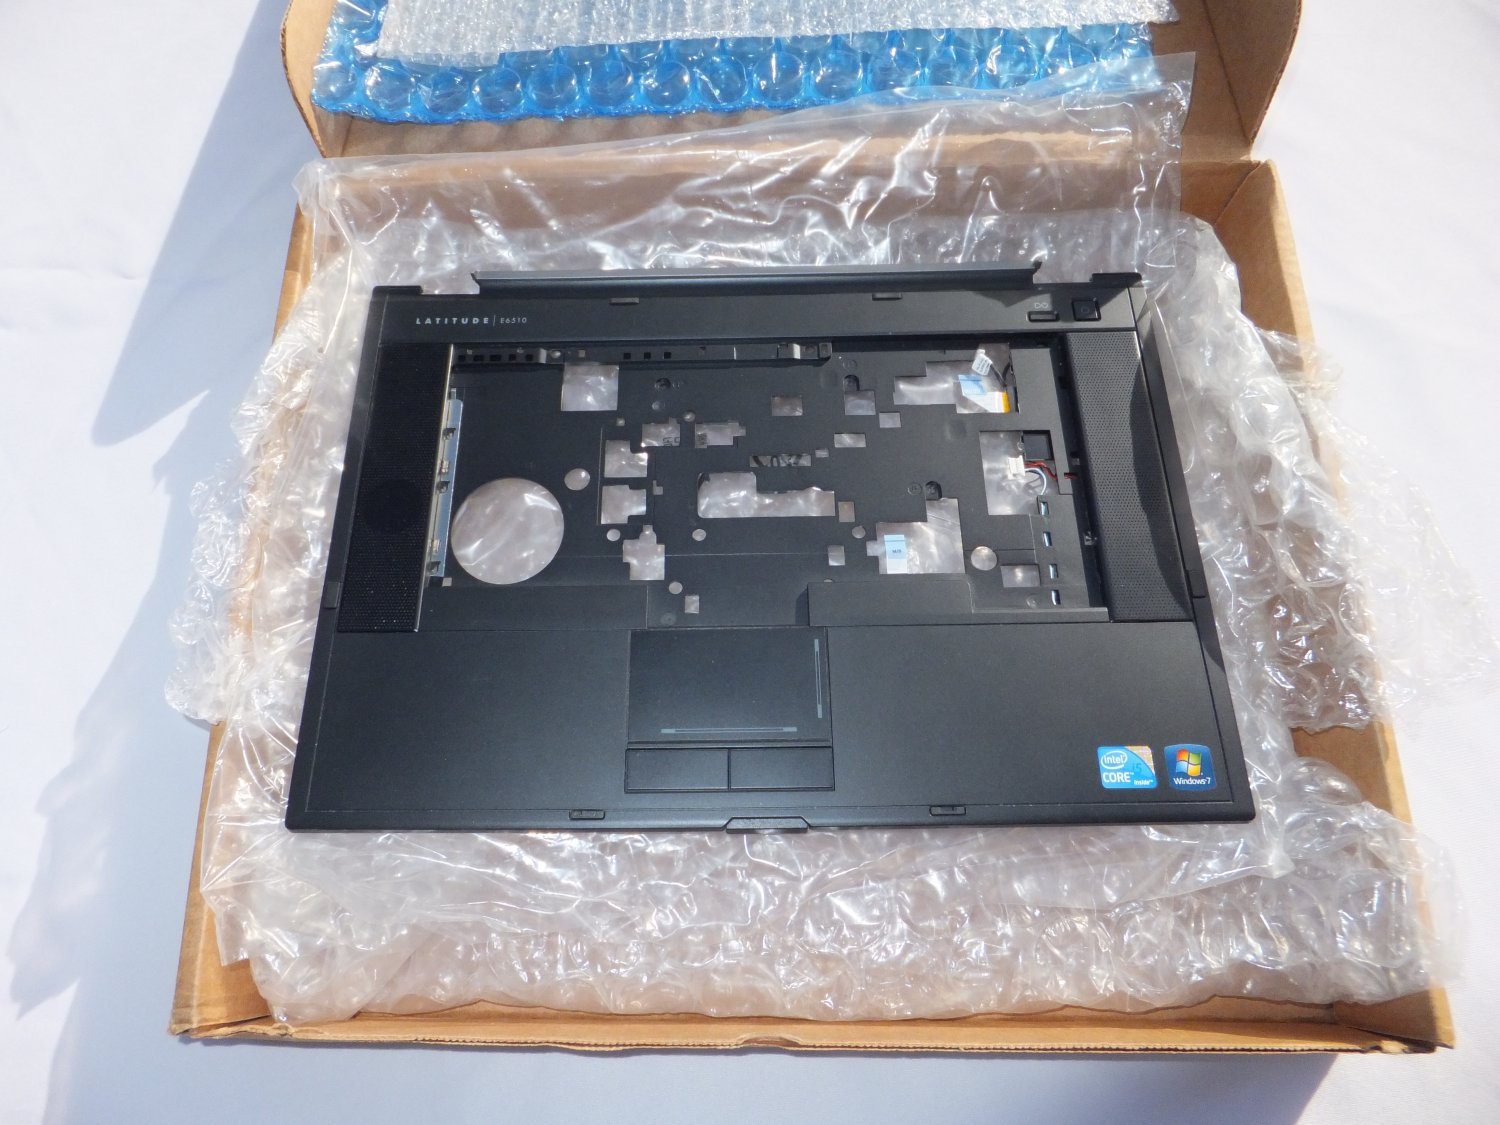 � Dell LATITUDE E6510 Top Casing Bezel/Touchpad 060YVG + Smart Card Reader 02C0K1 �